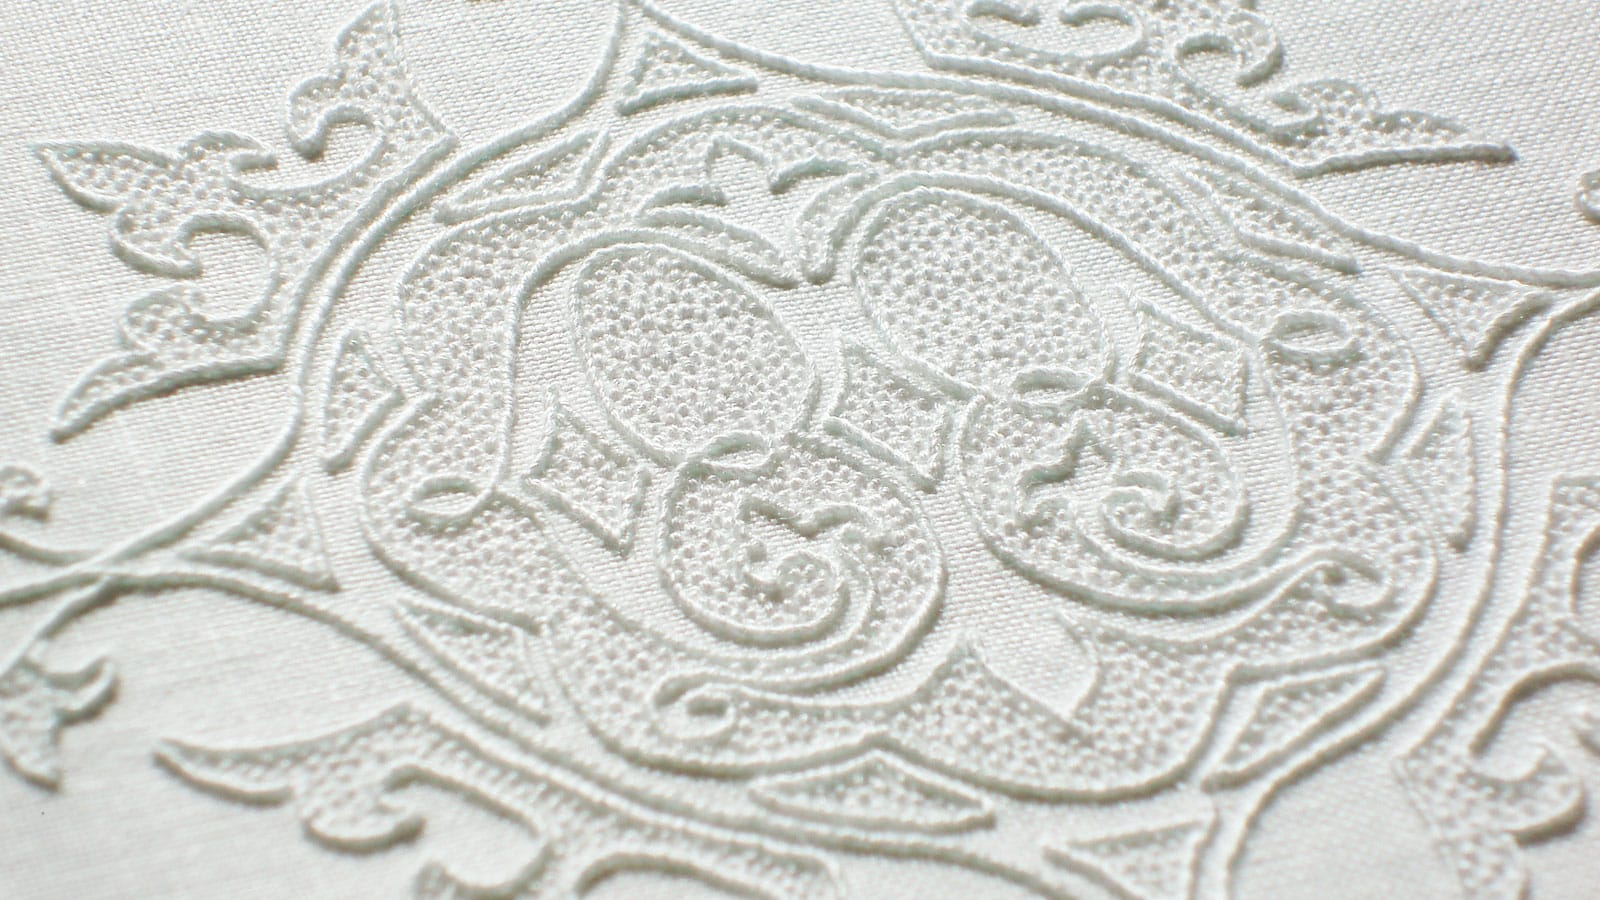 How To Make Your Own Embroidery Pattern Needlenthread Page 2 Tips Tricks And Great Resources For